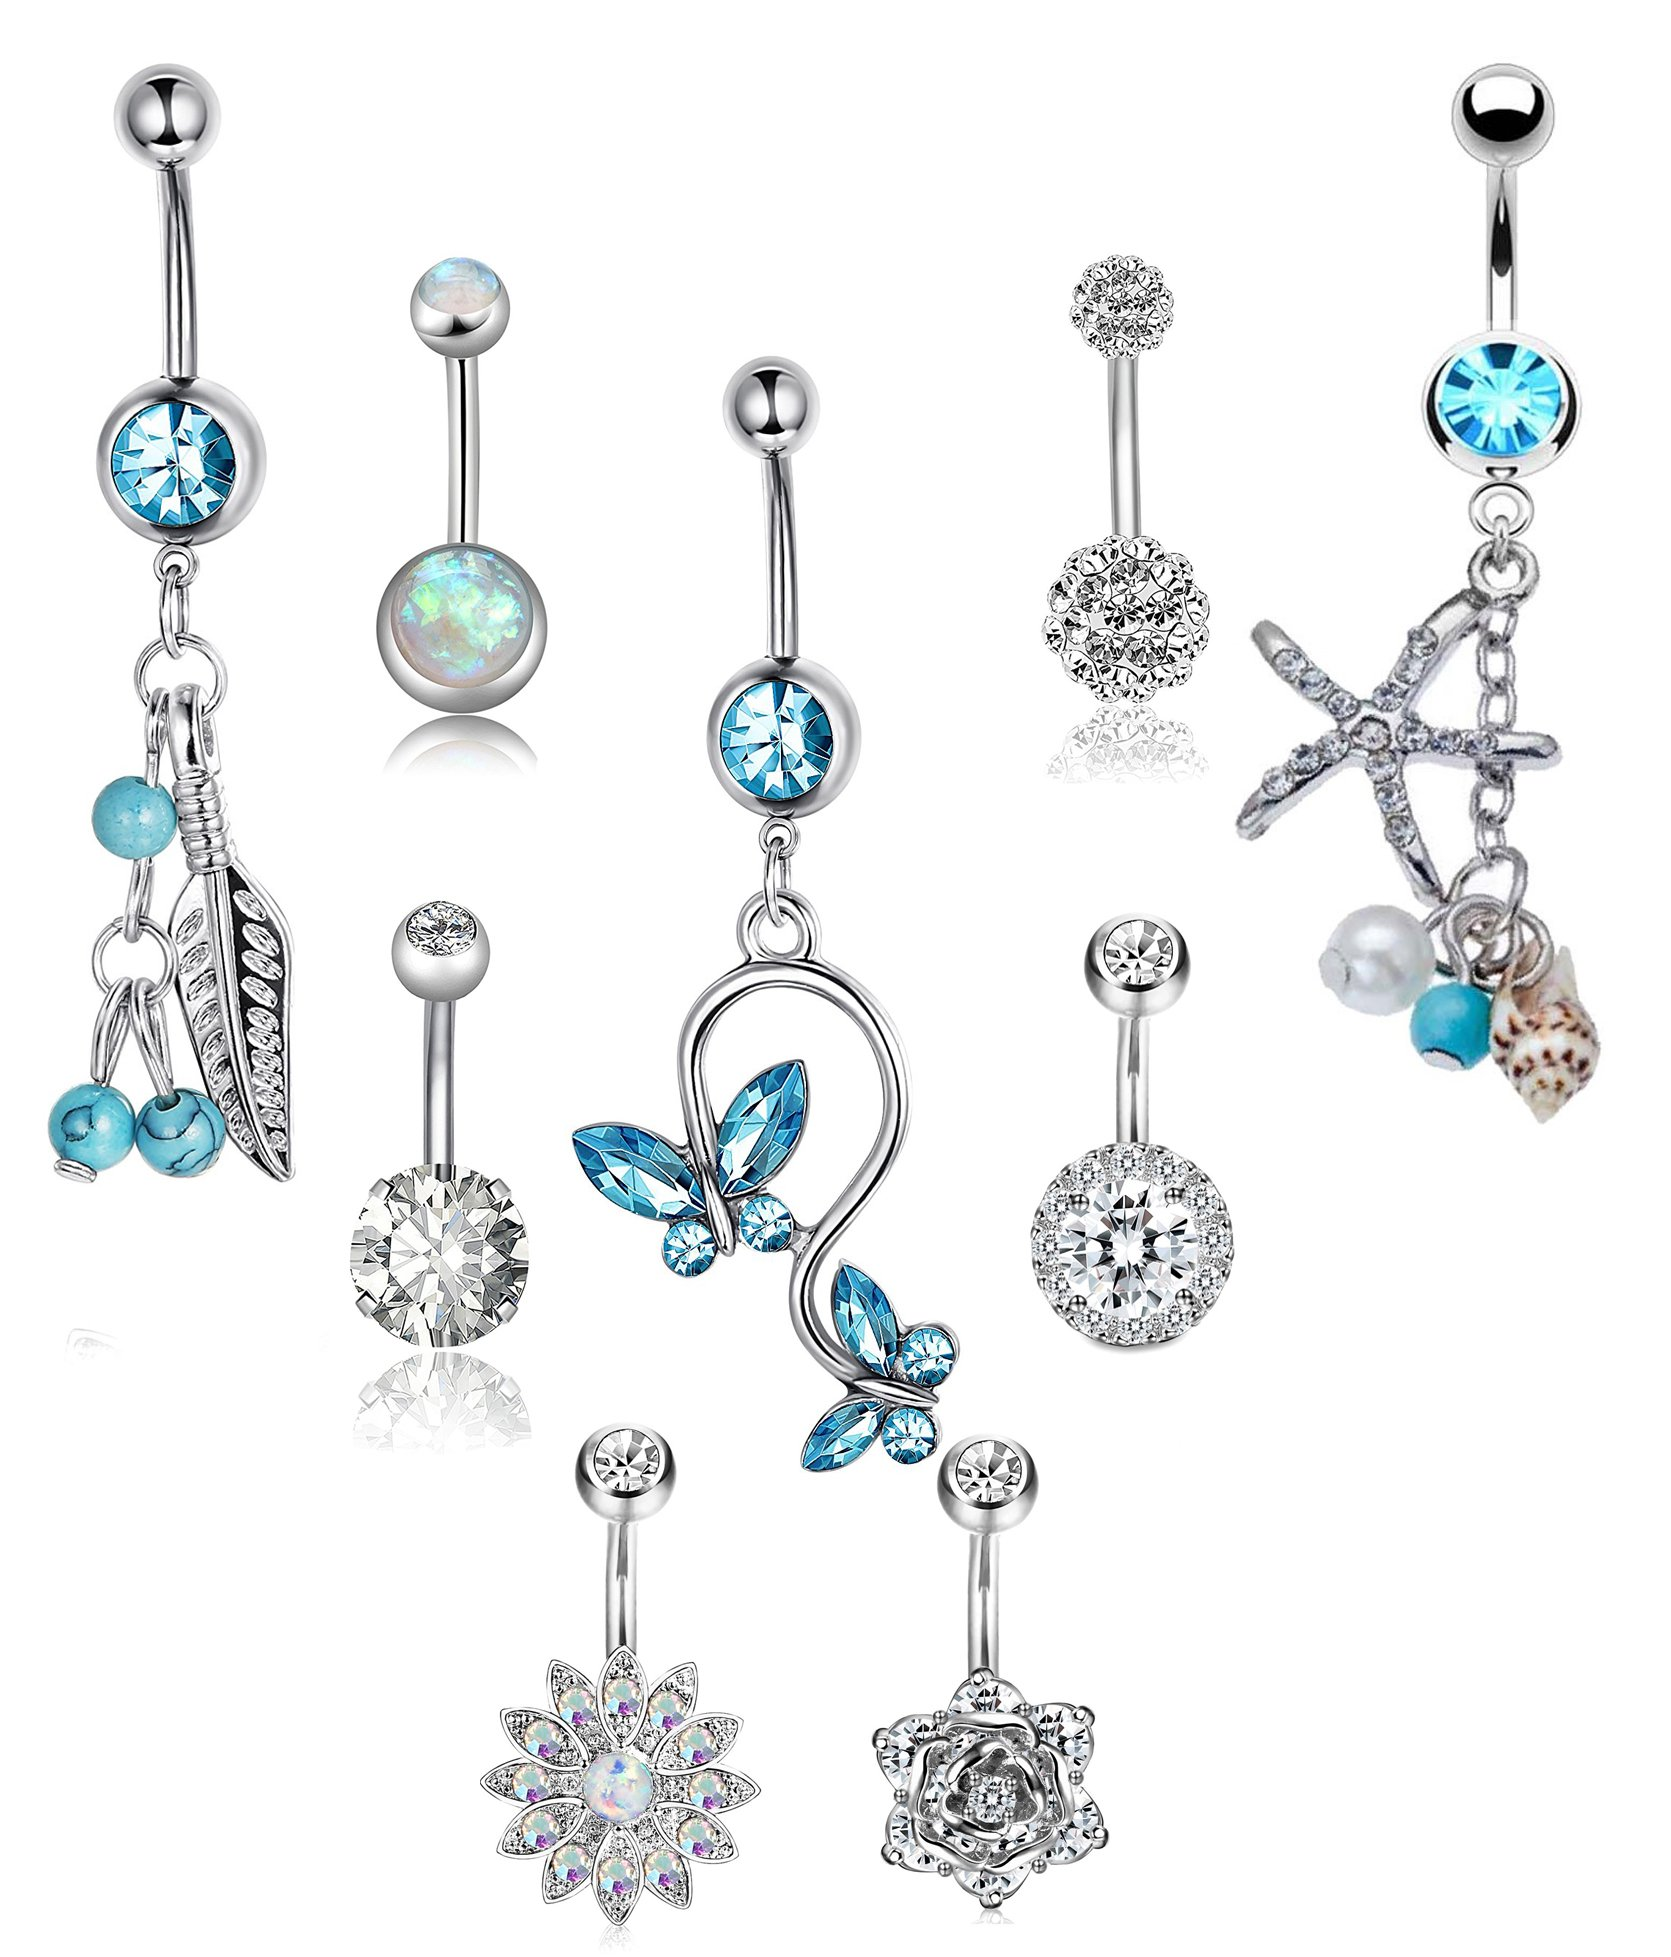 LOLIAS 9 Pcs 14G Belly Button Rings for Women Girls Navel Barbell Rings Body Piercing Jewelry RG